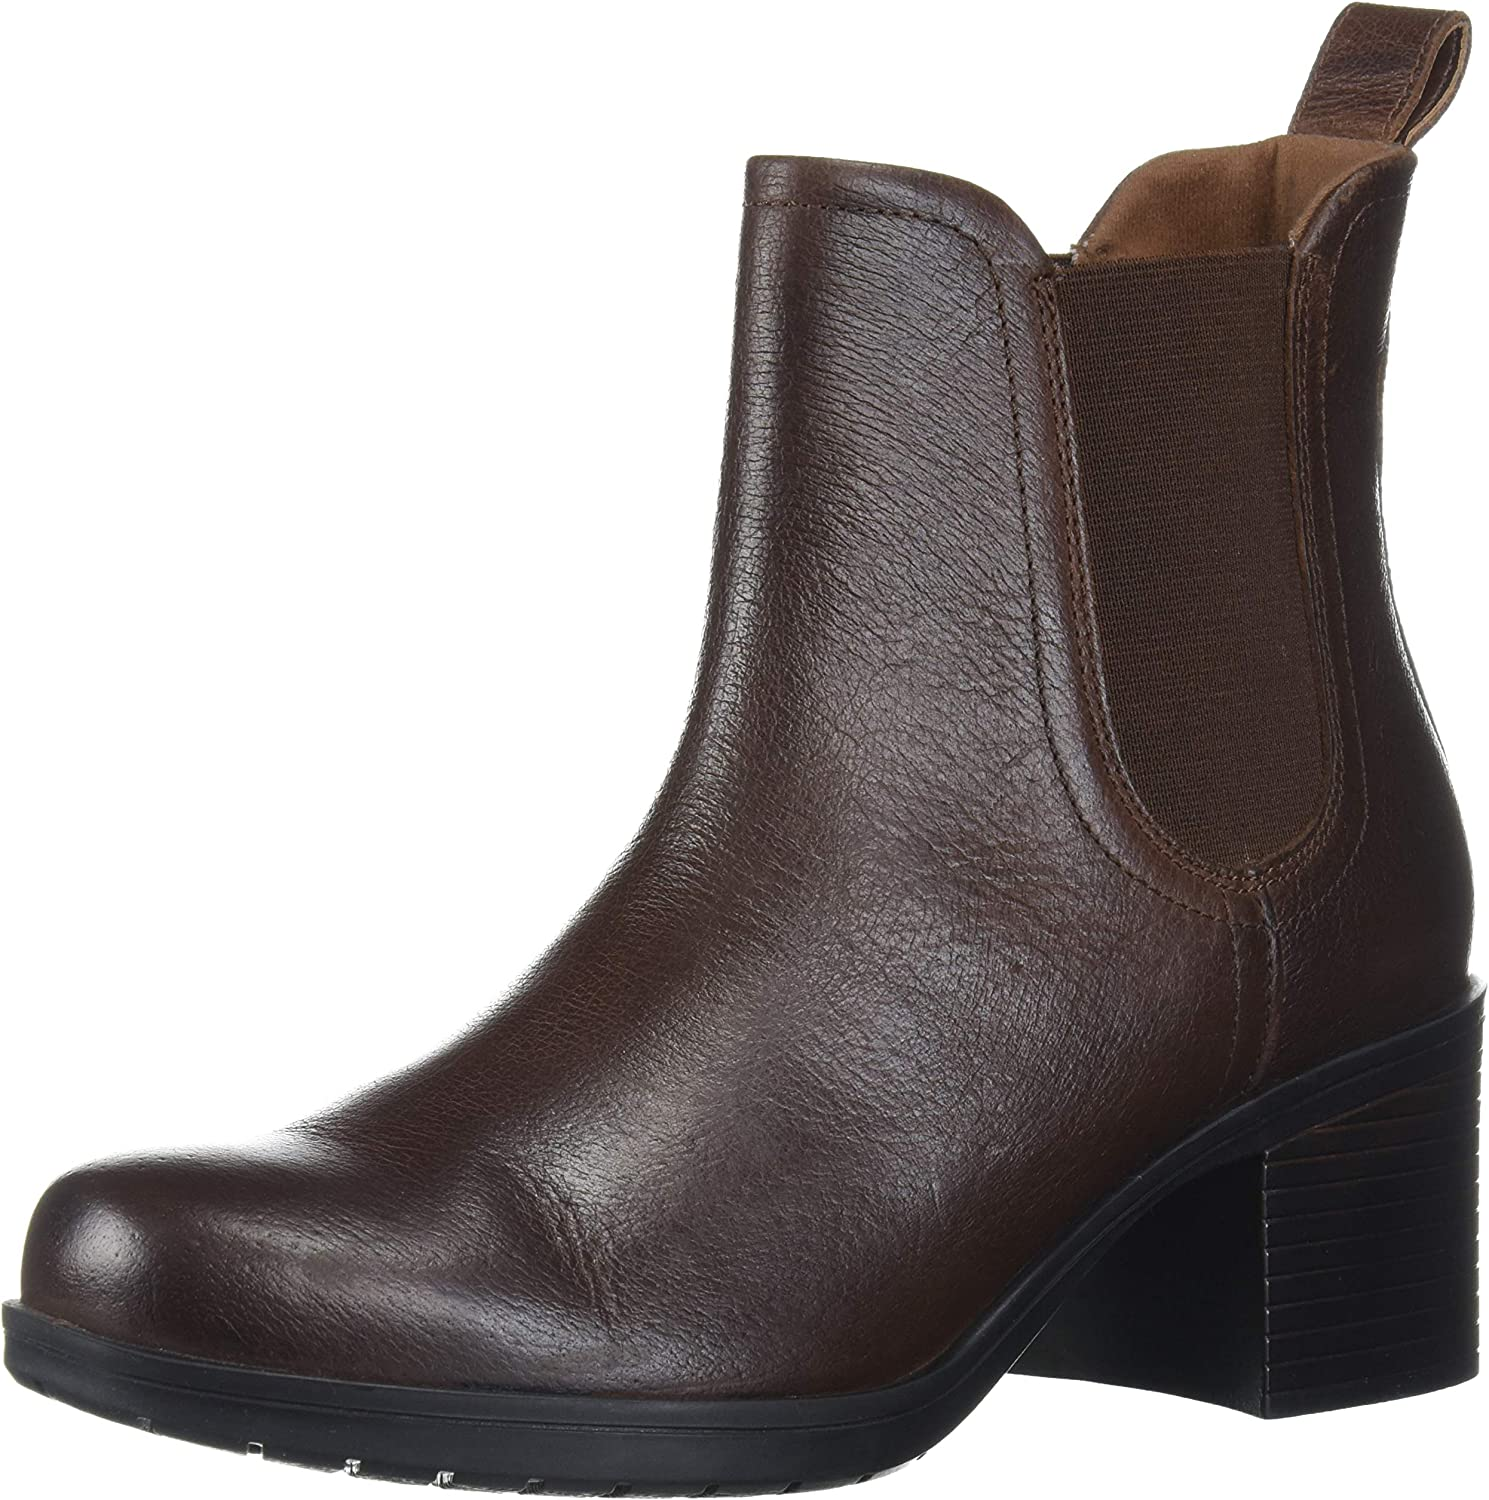 Baltimore Mall Clarks Women's Hollis Chelsea Boot Sun 70% OFF Outlet